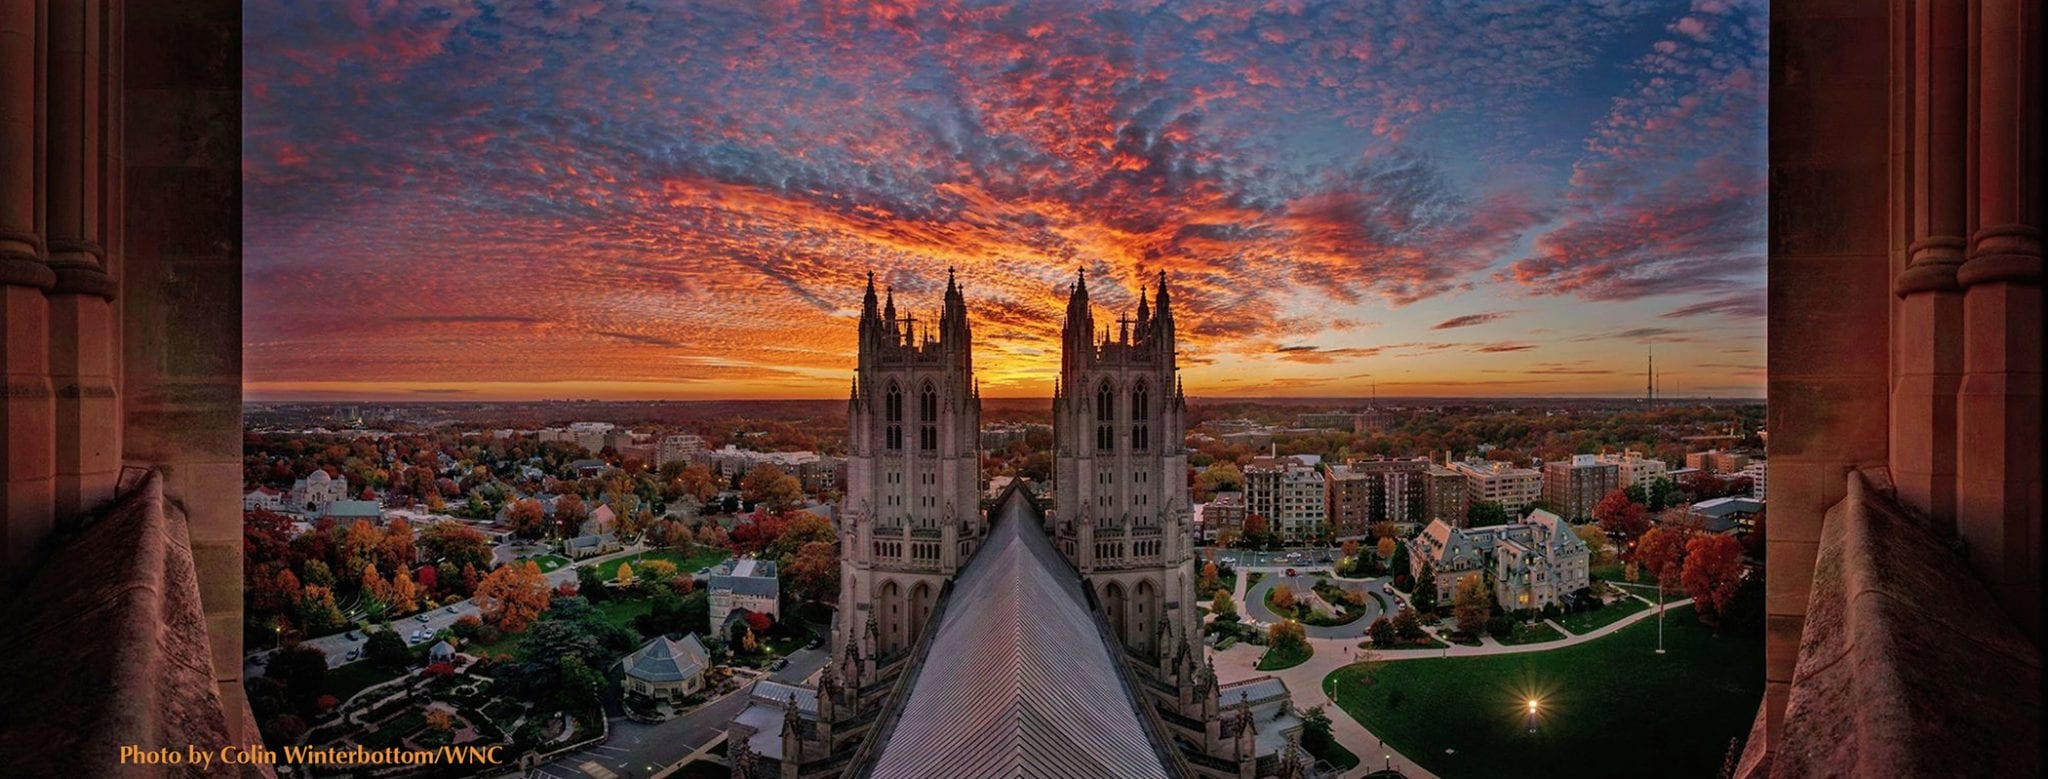 Washington National Cathedral Colin Winterbottom photo